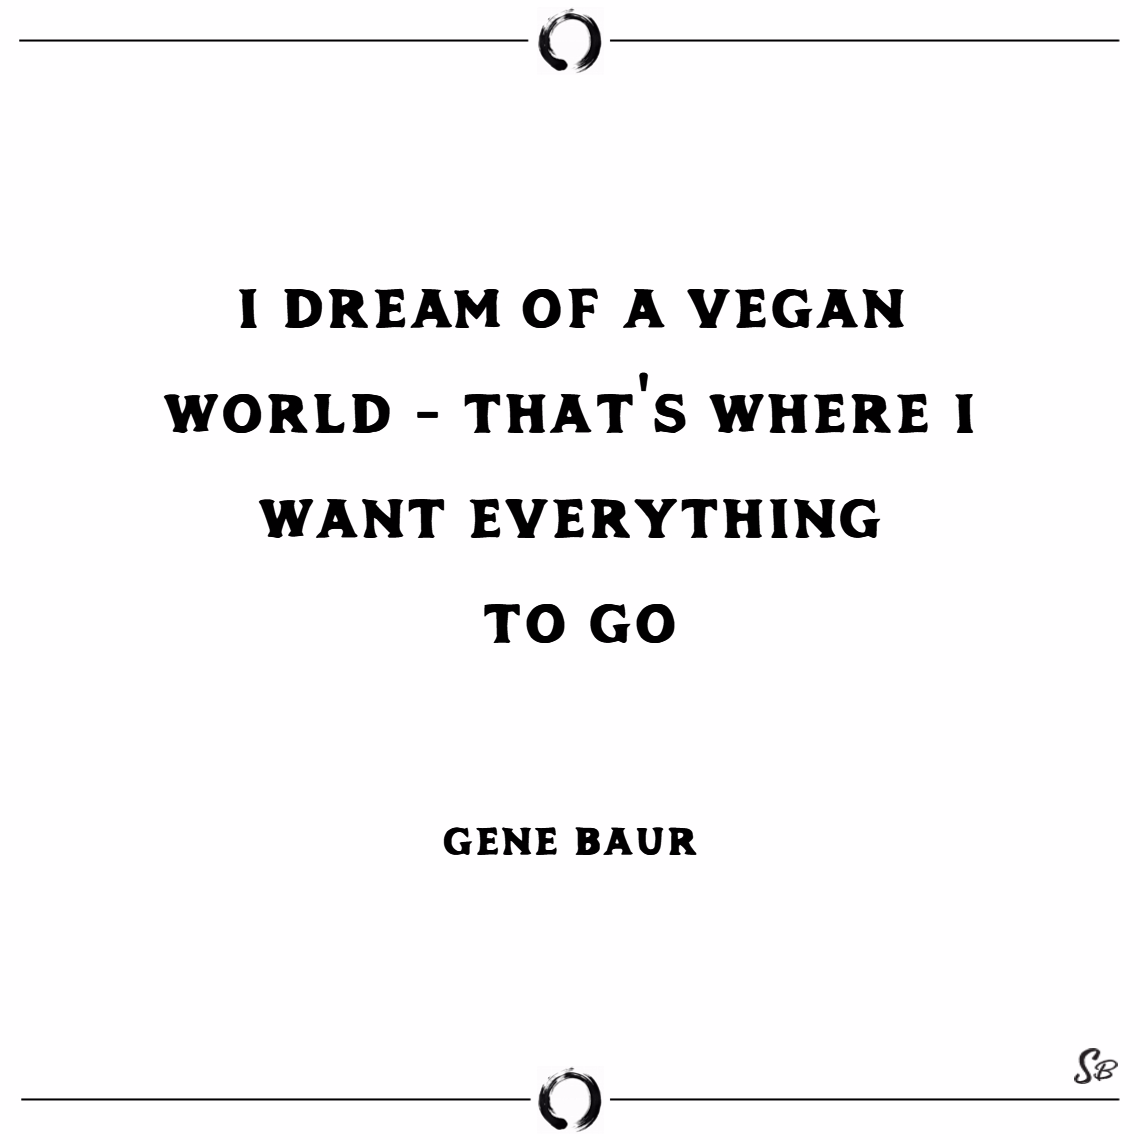 I dream of a vegan world that's where i want everything to go. – gene baur